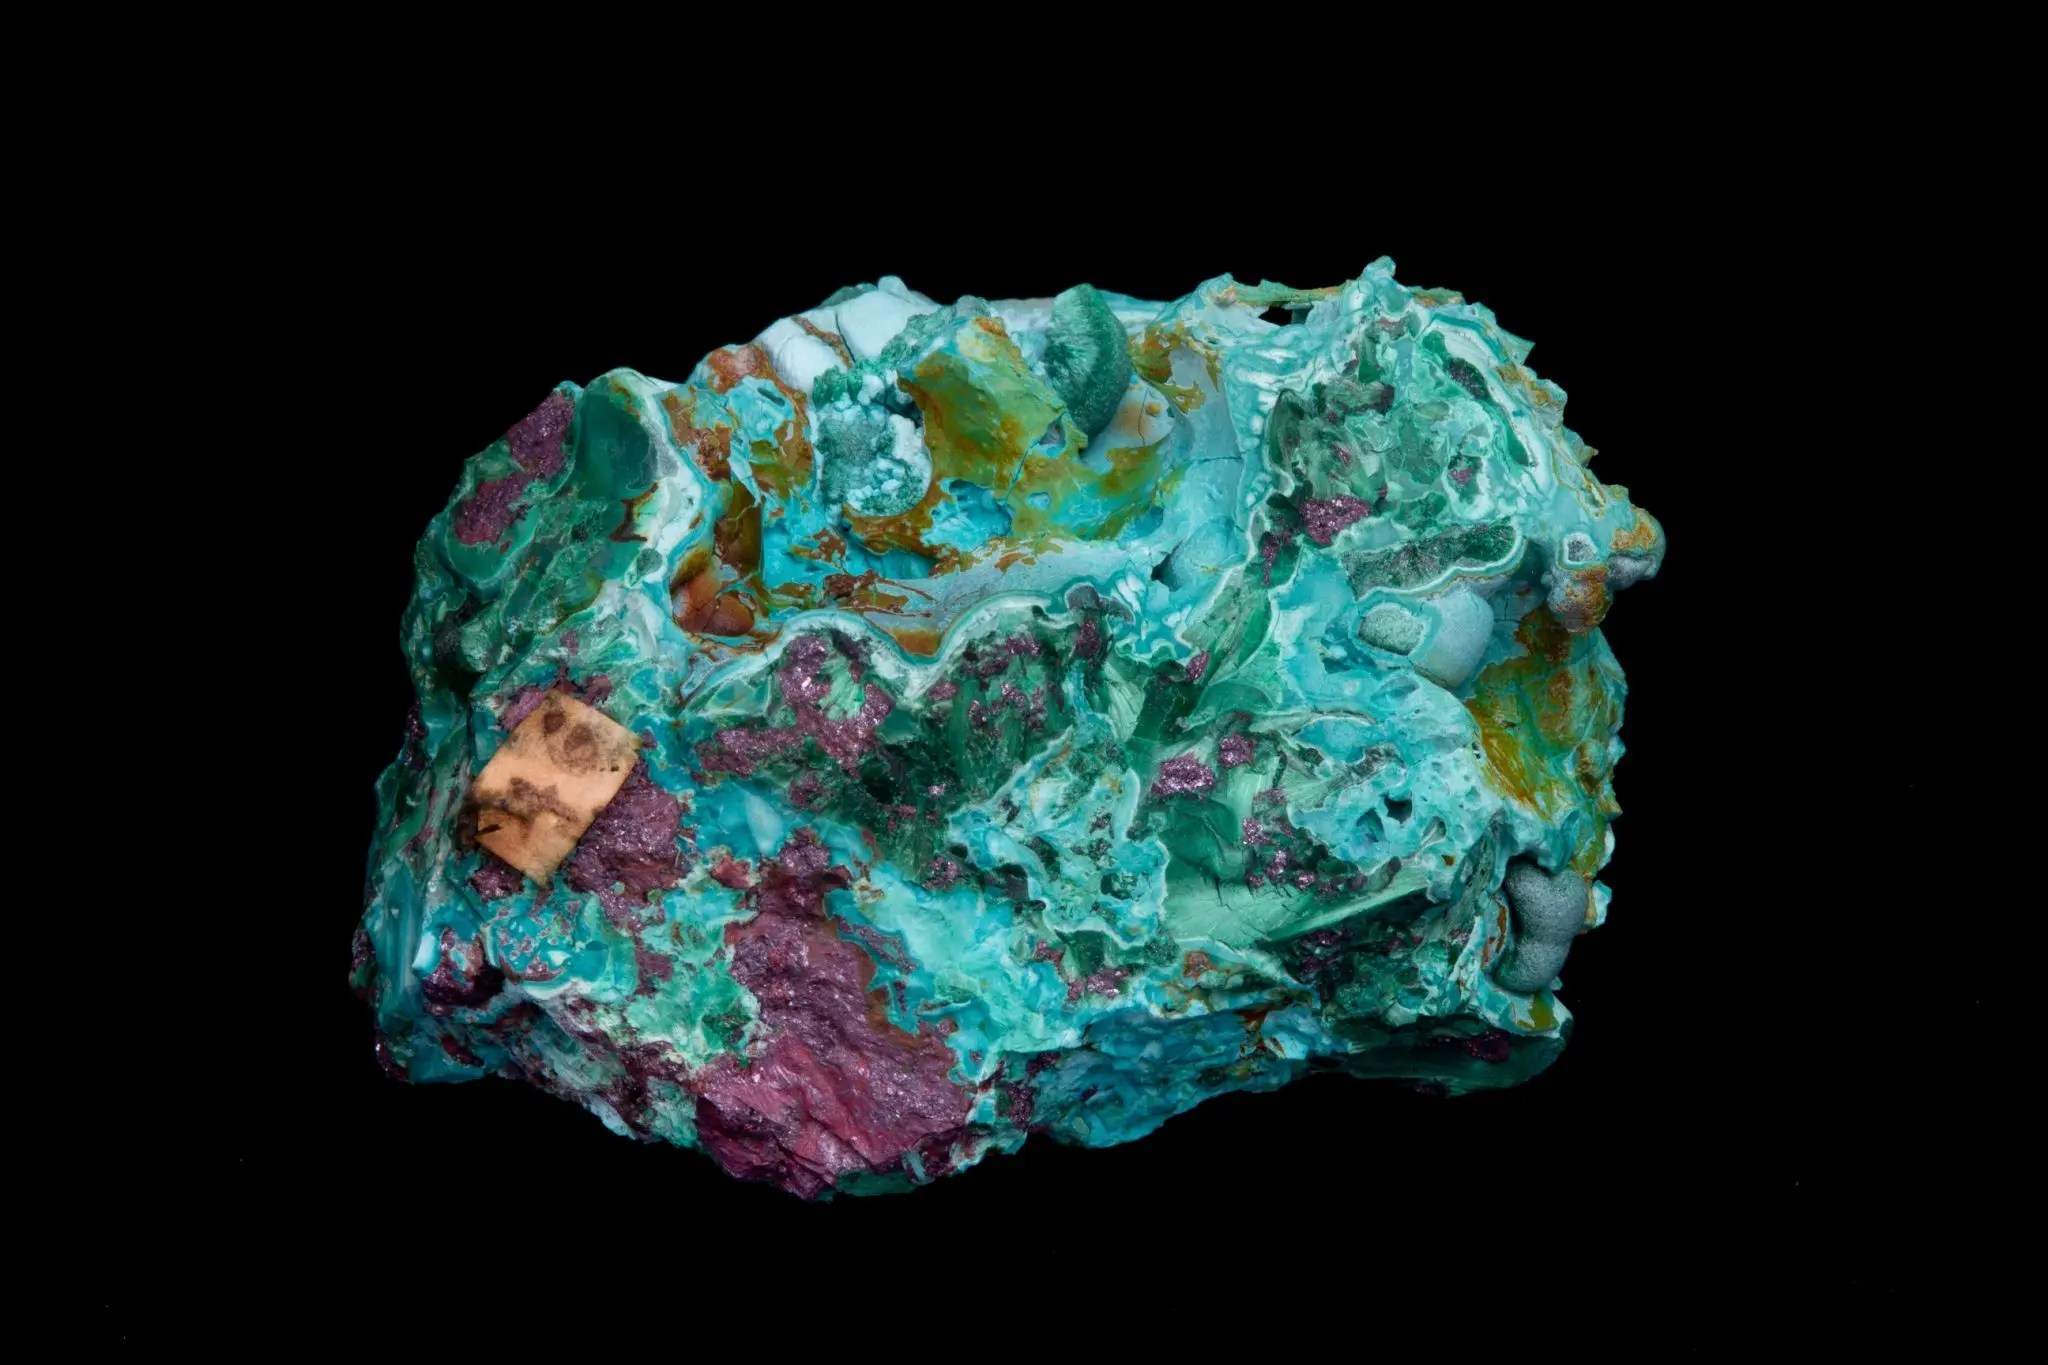 Chrysocolla with Malachite and Cuprite from Brantwood's collection